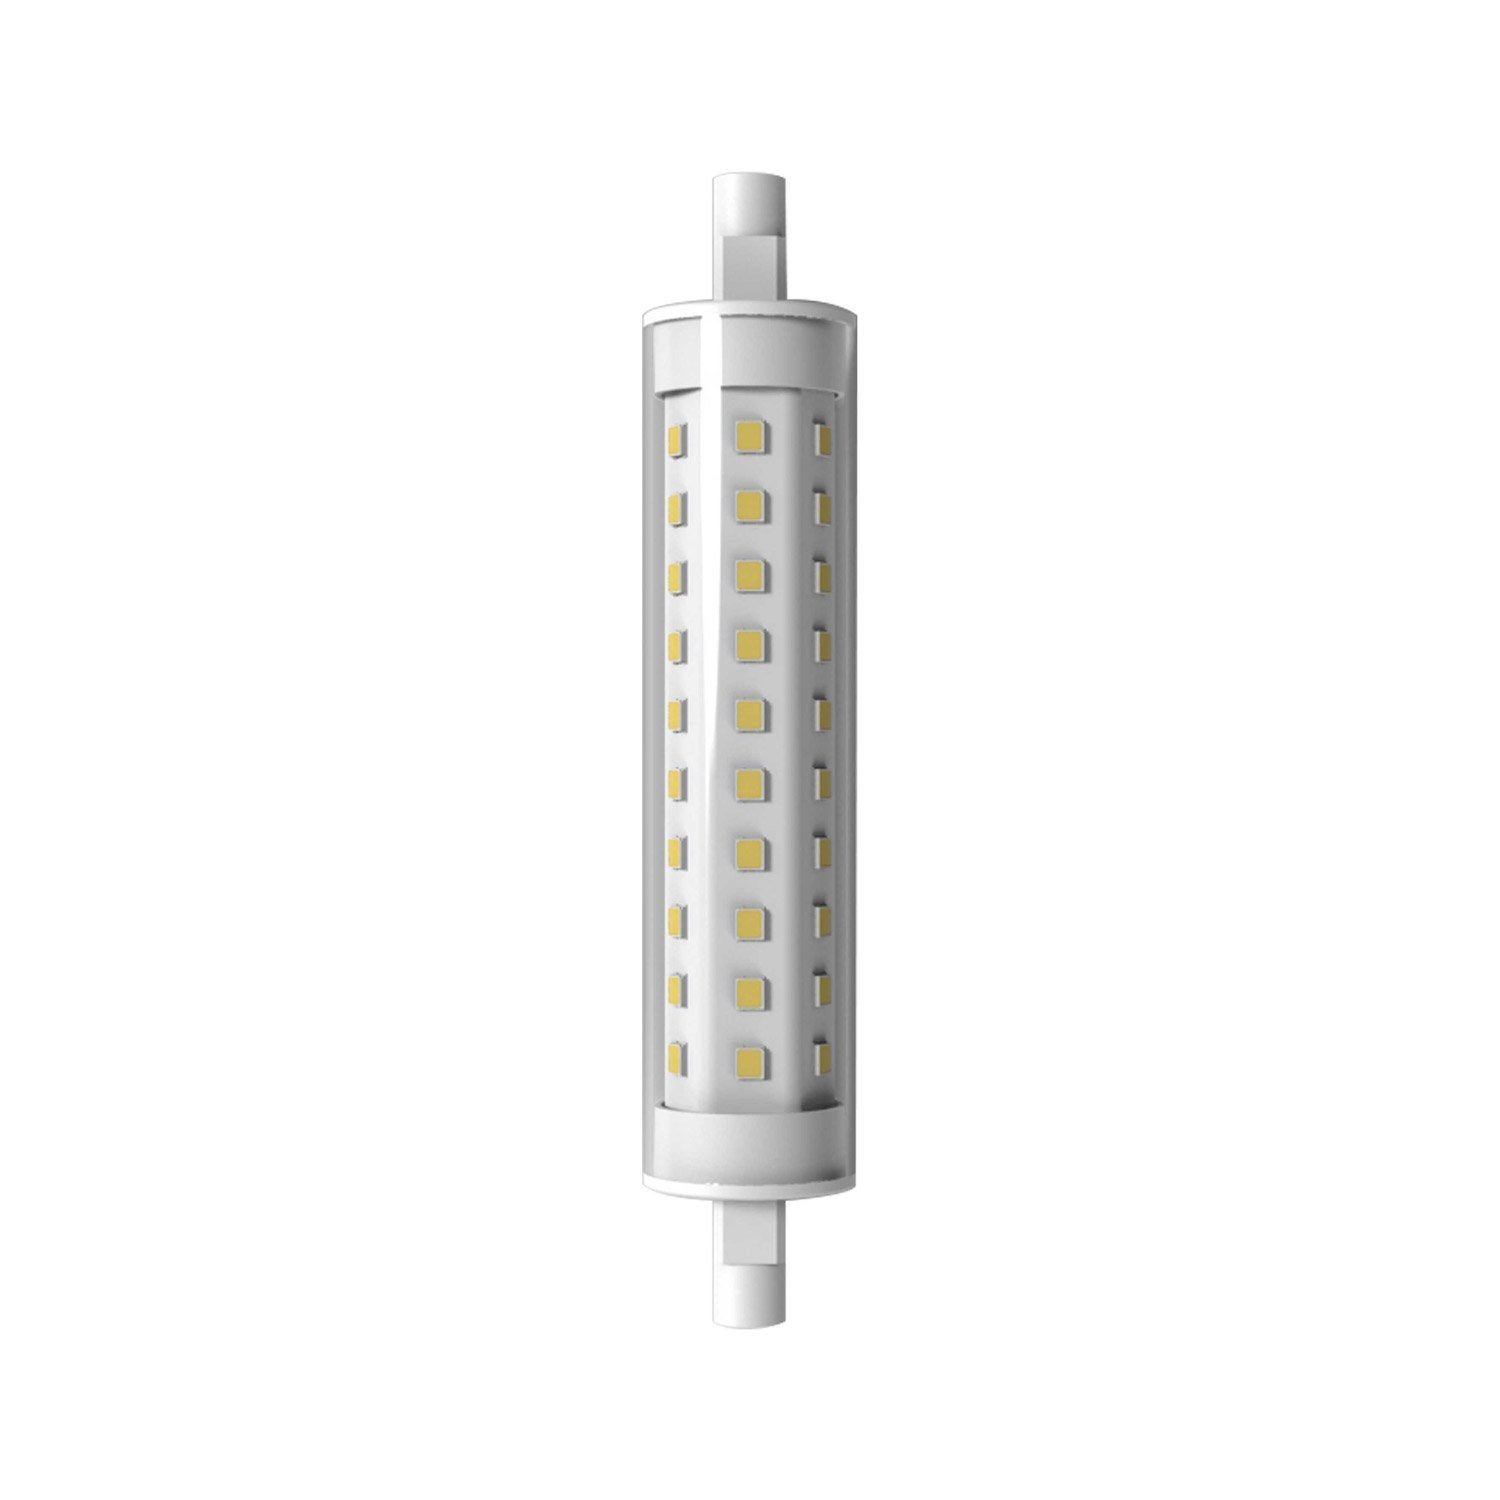 Ampoule tube led 9w quiv 75w r7s 118mm 4000k lexman for R7s led 78mm leroy merlin